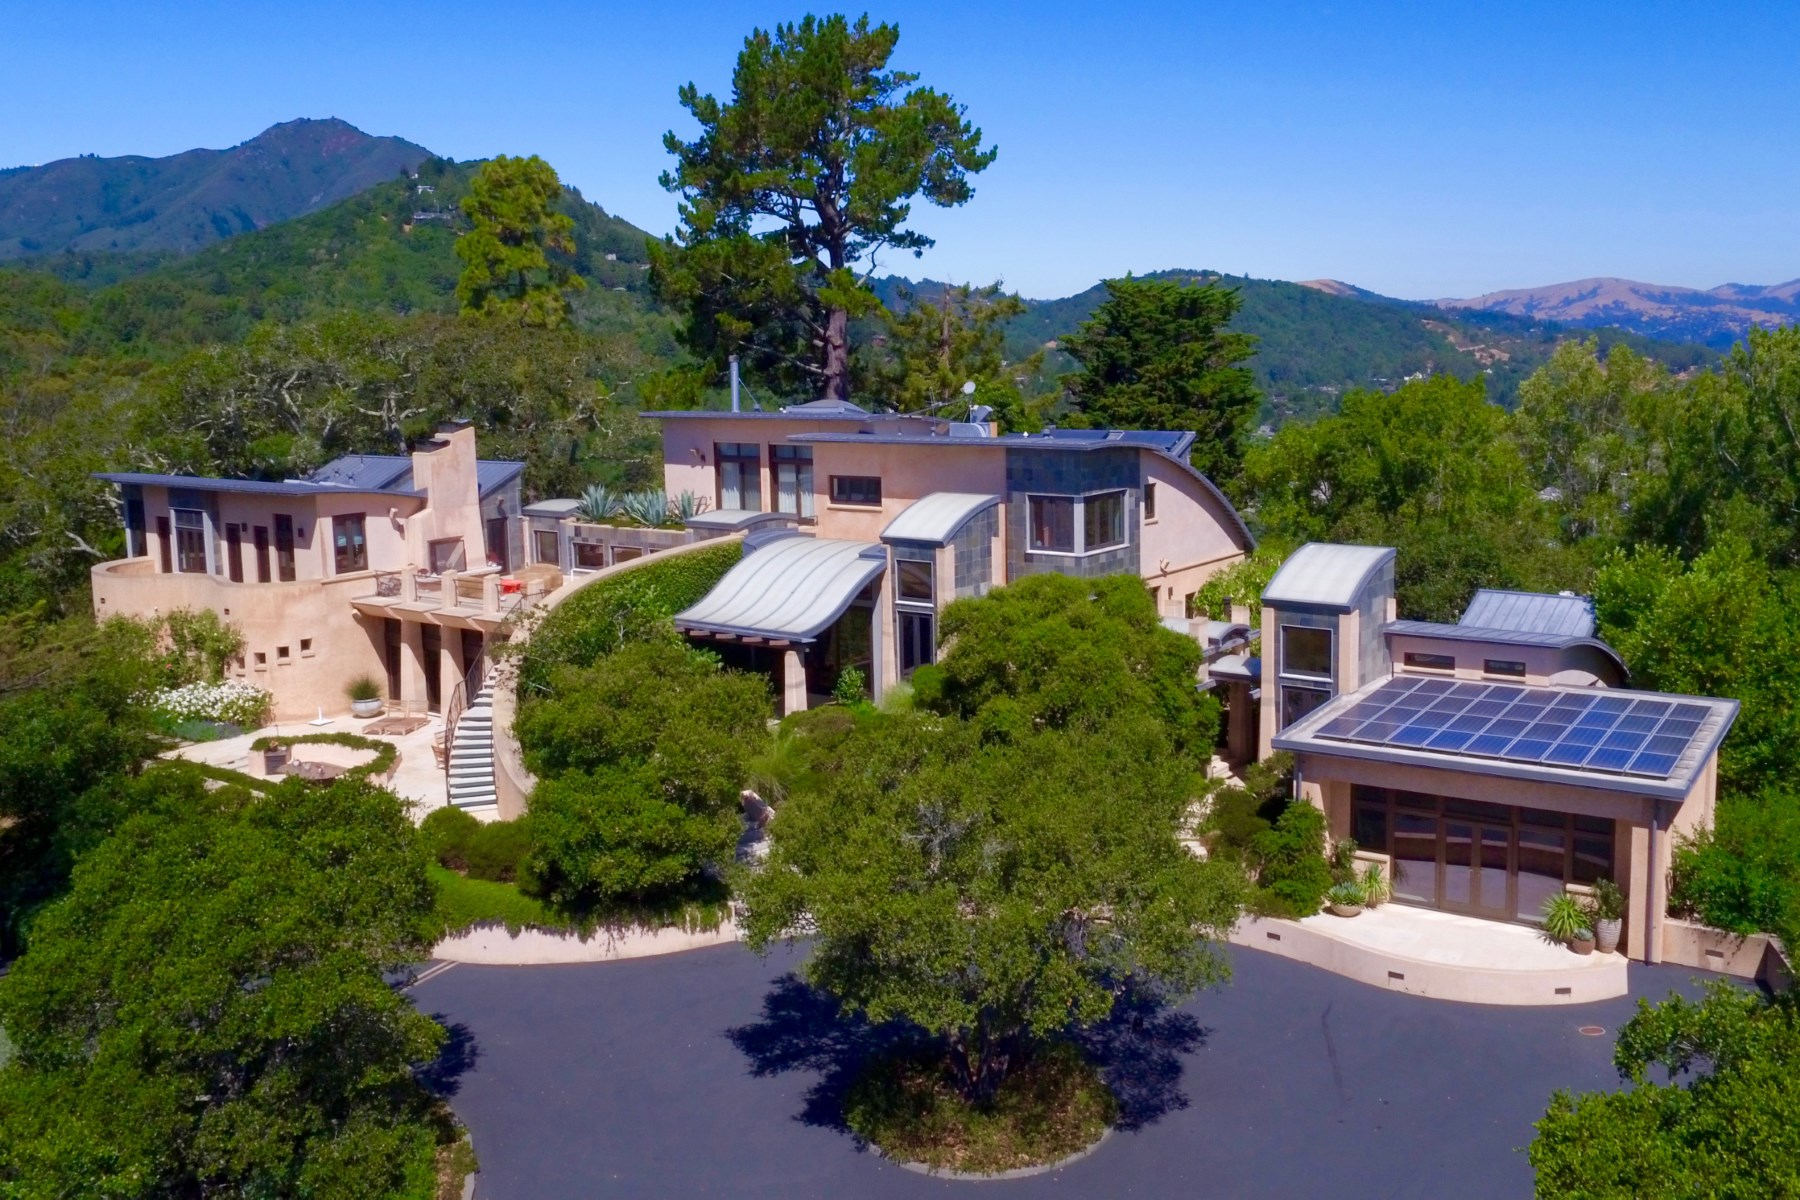 Maison unifamiliale pour l Vente à Unprecedented Approx. 11-Acre Compound Corte Madera, Californie 94925 États-Unis